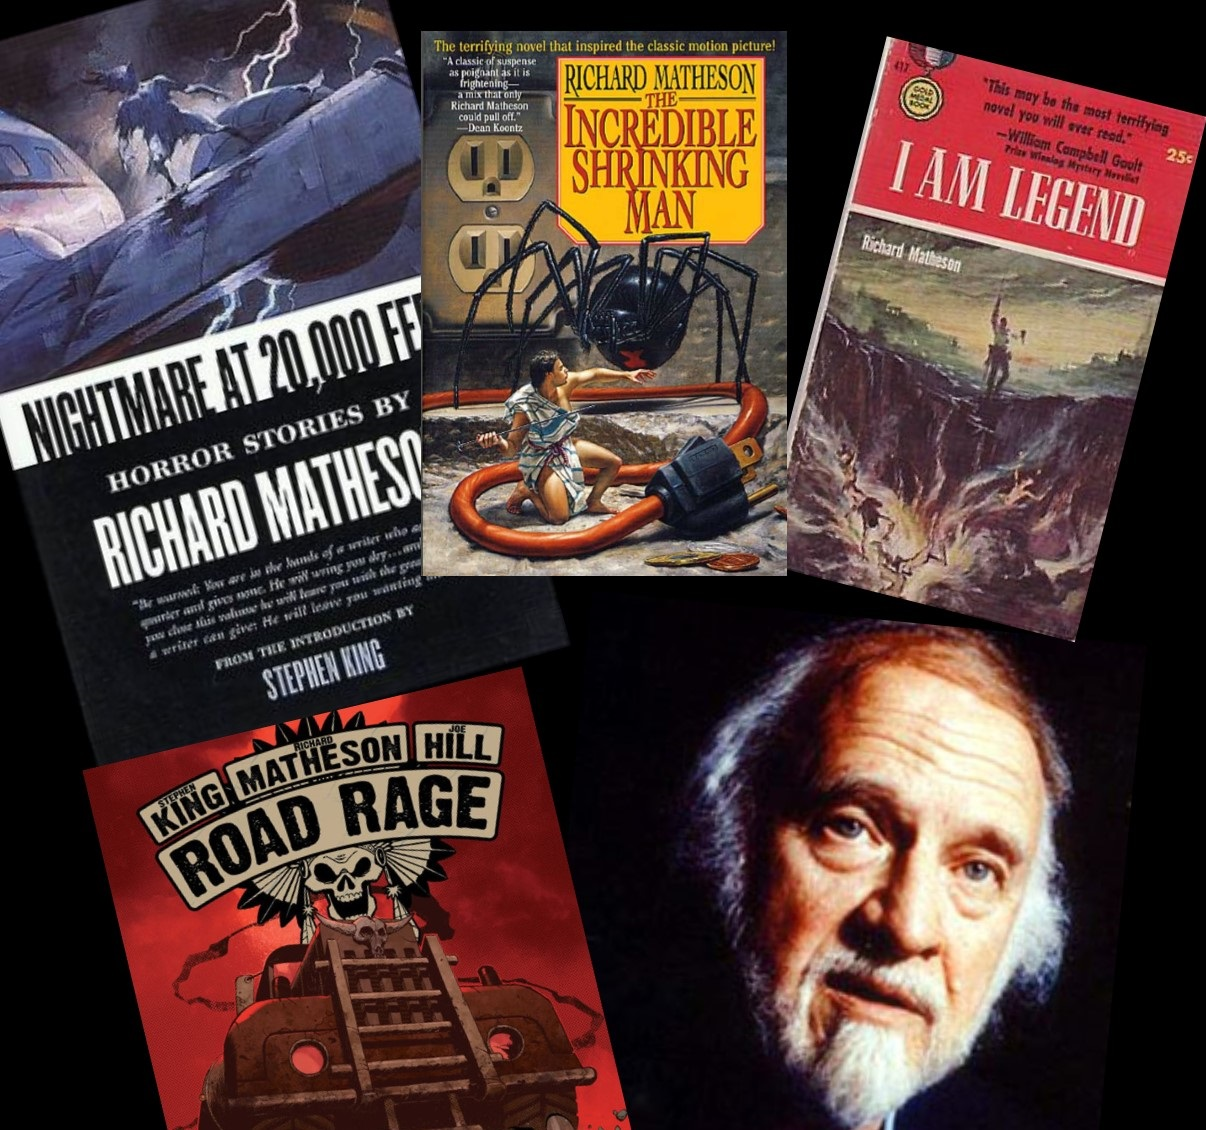 Richard Matheson, the author